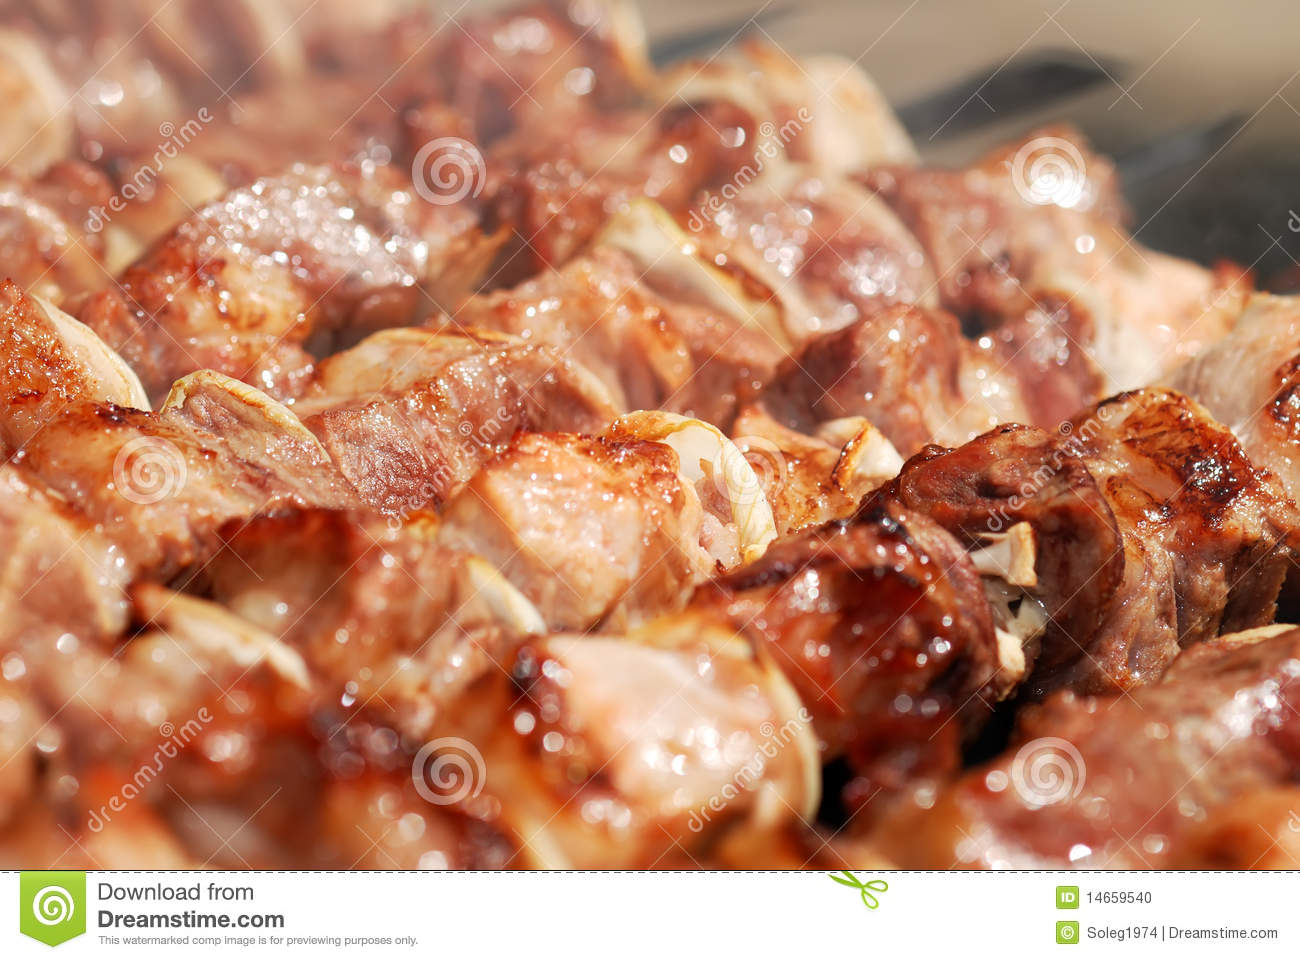 Meat slices prepare on fire